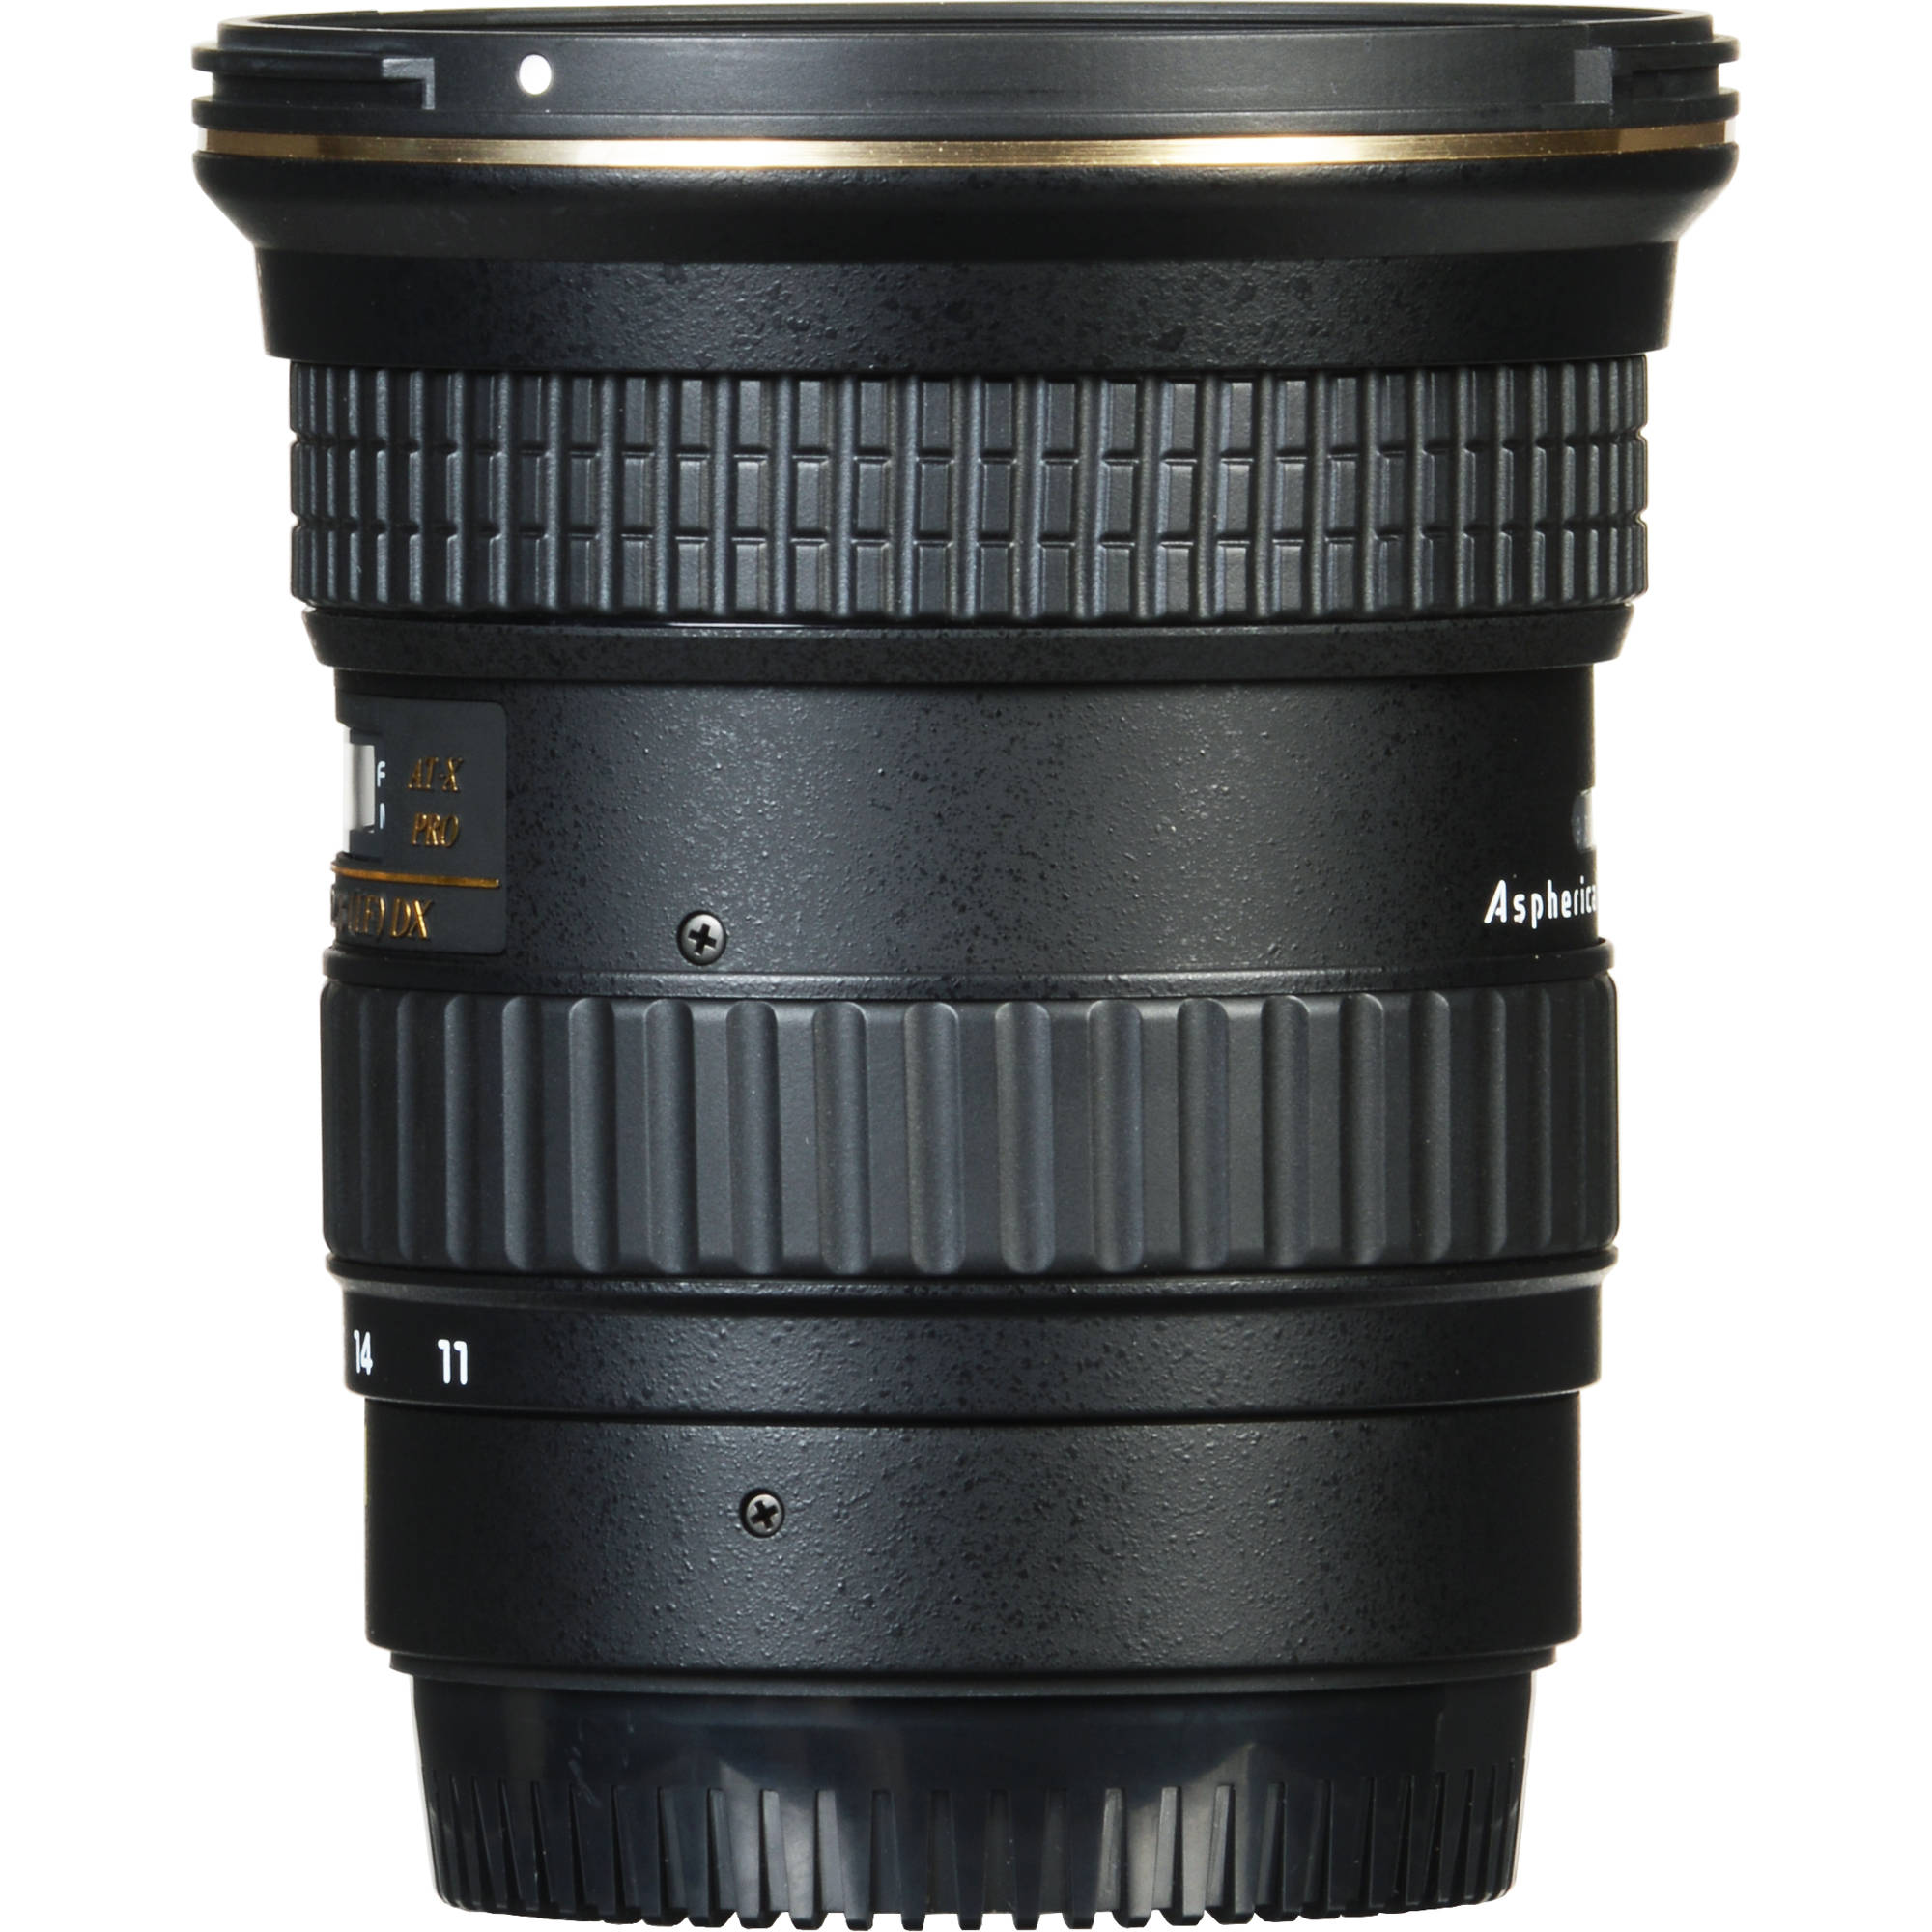 Tokina 11-20mm AT-X F2.8 PRO DX Lens for Canon EF